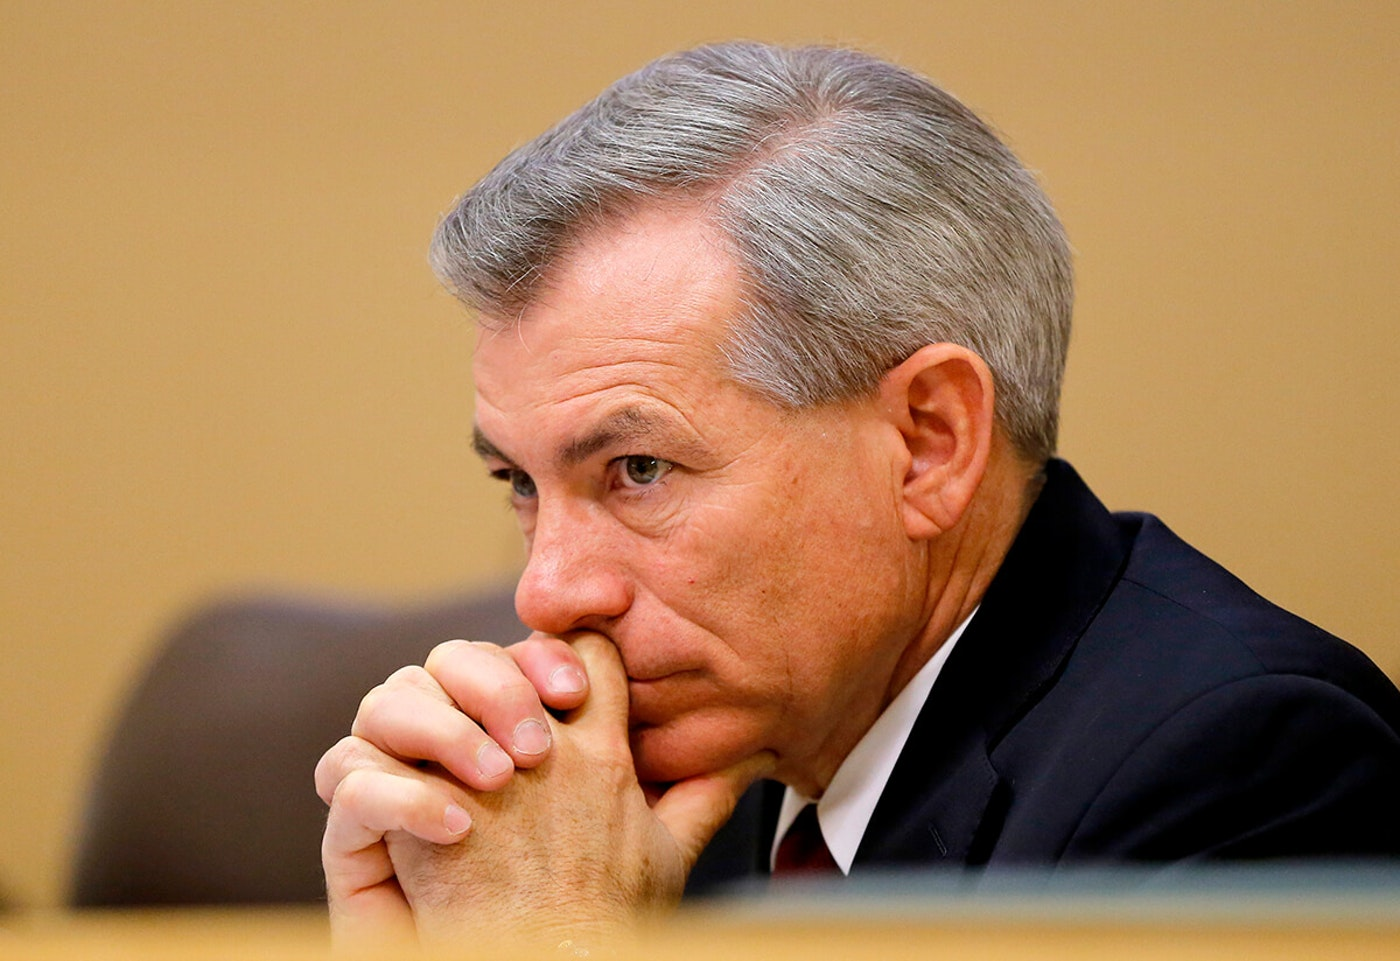 Rep. Schweikert sitting and leaning his chin on his hands